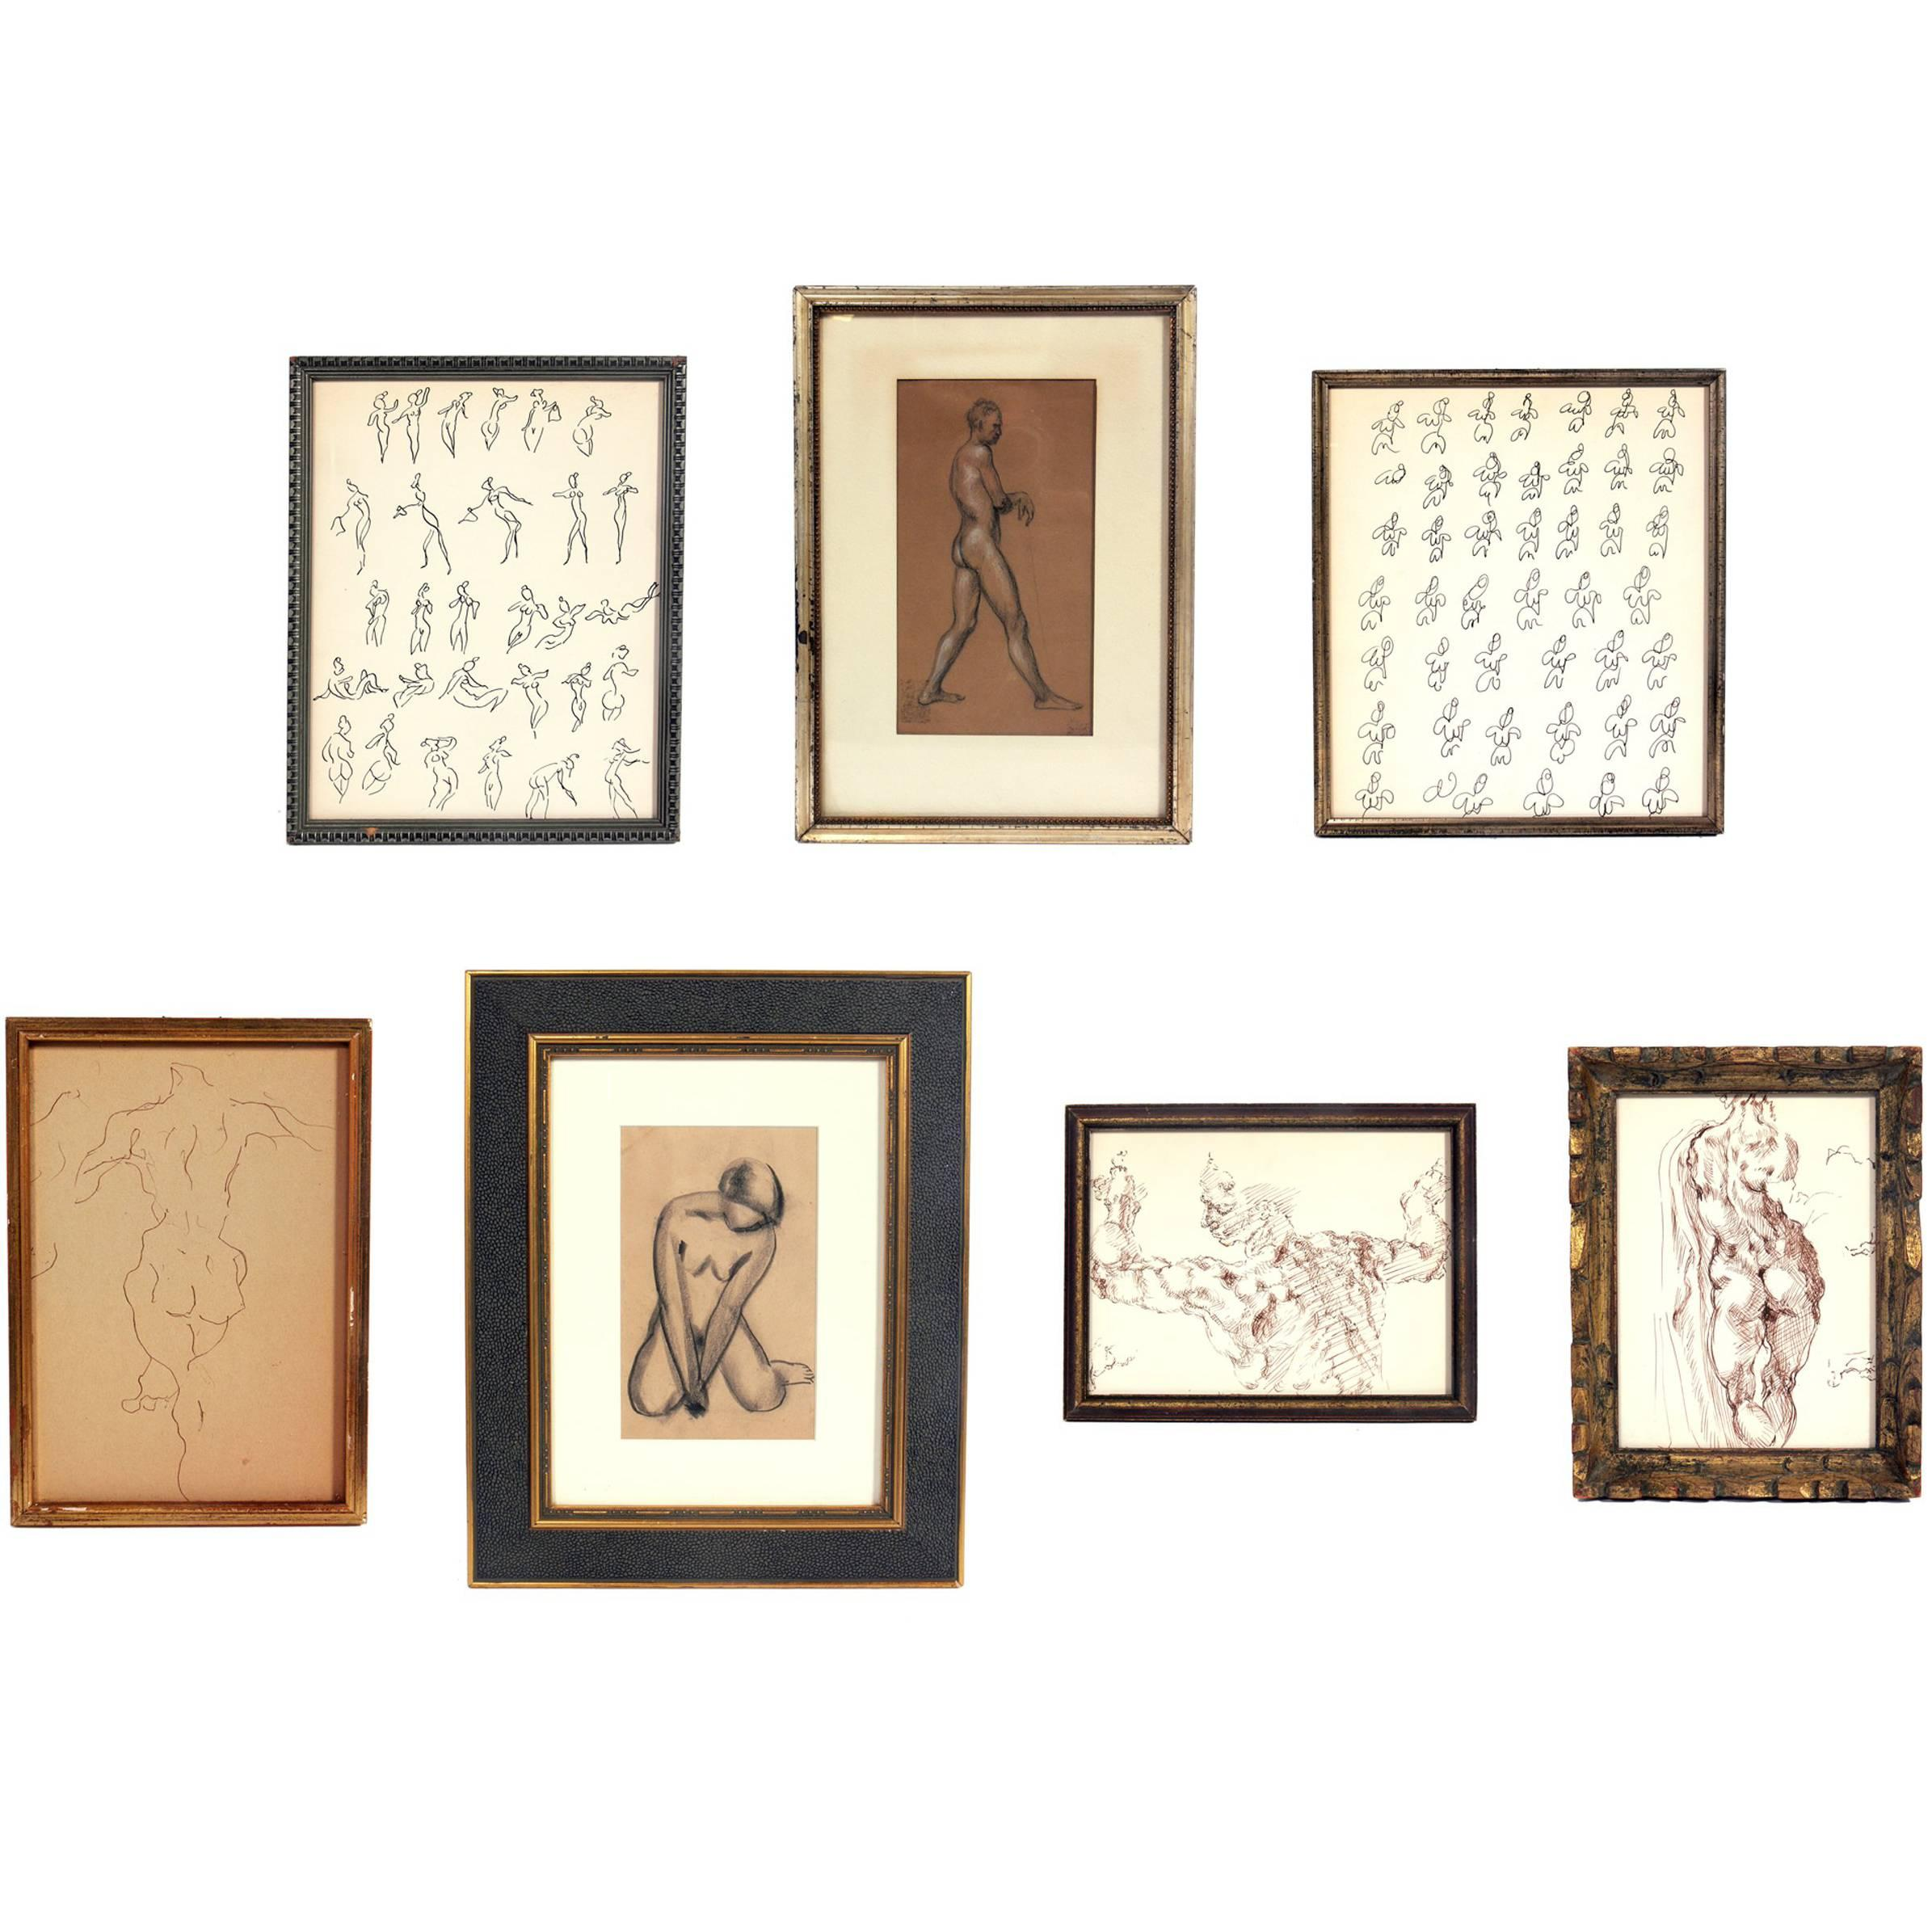 Selection of Figural Nude Drawings or Gallery Wall